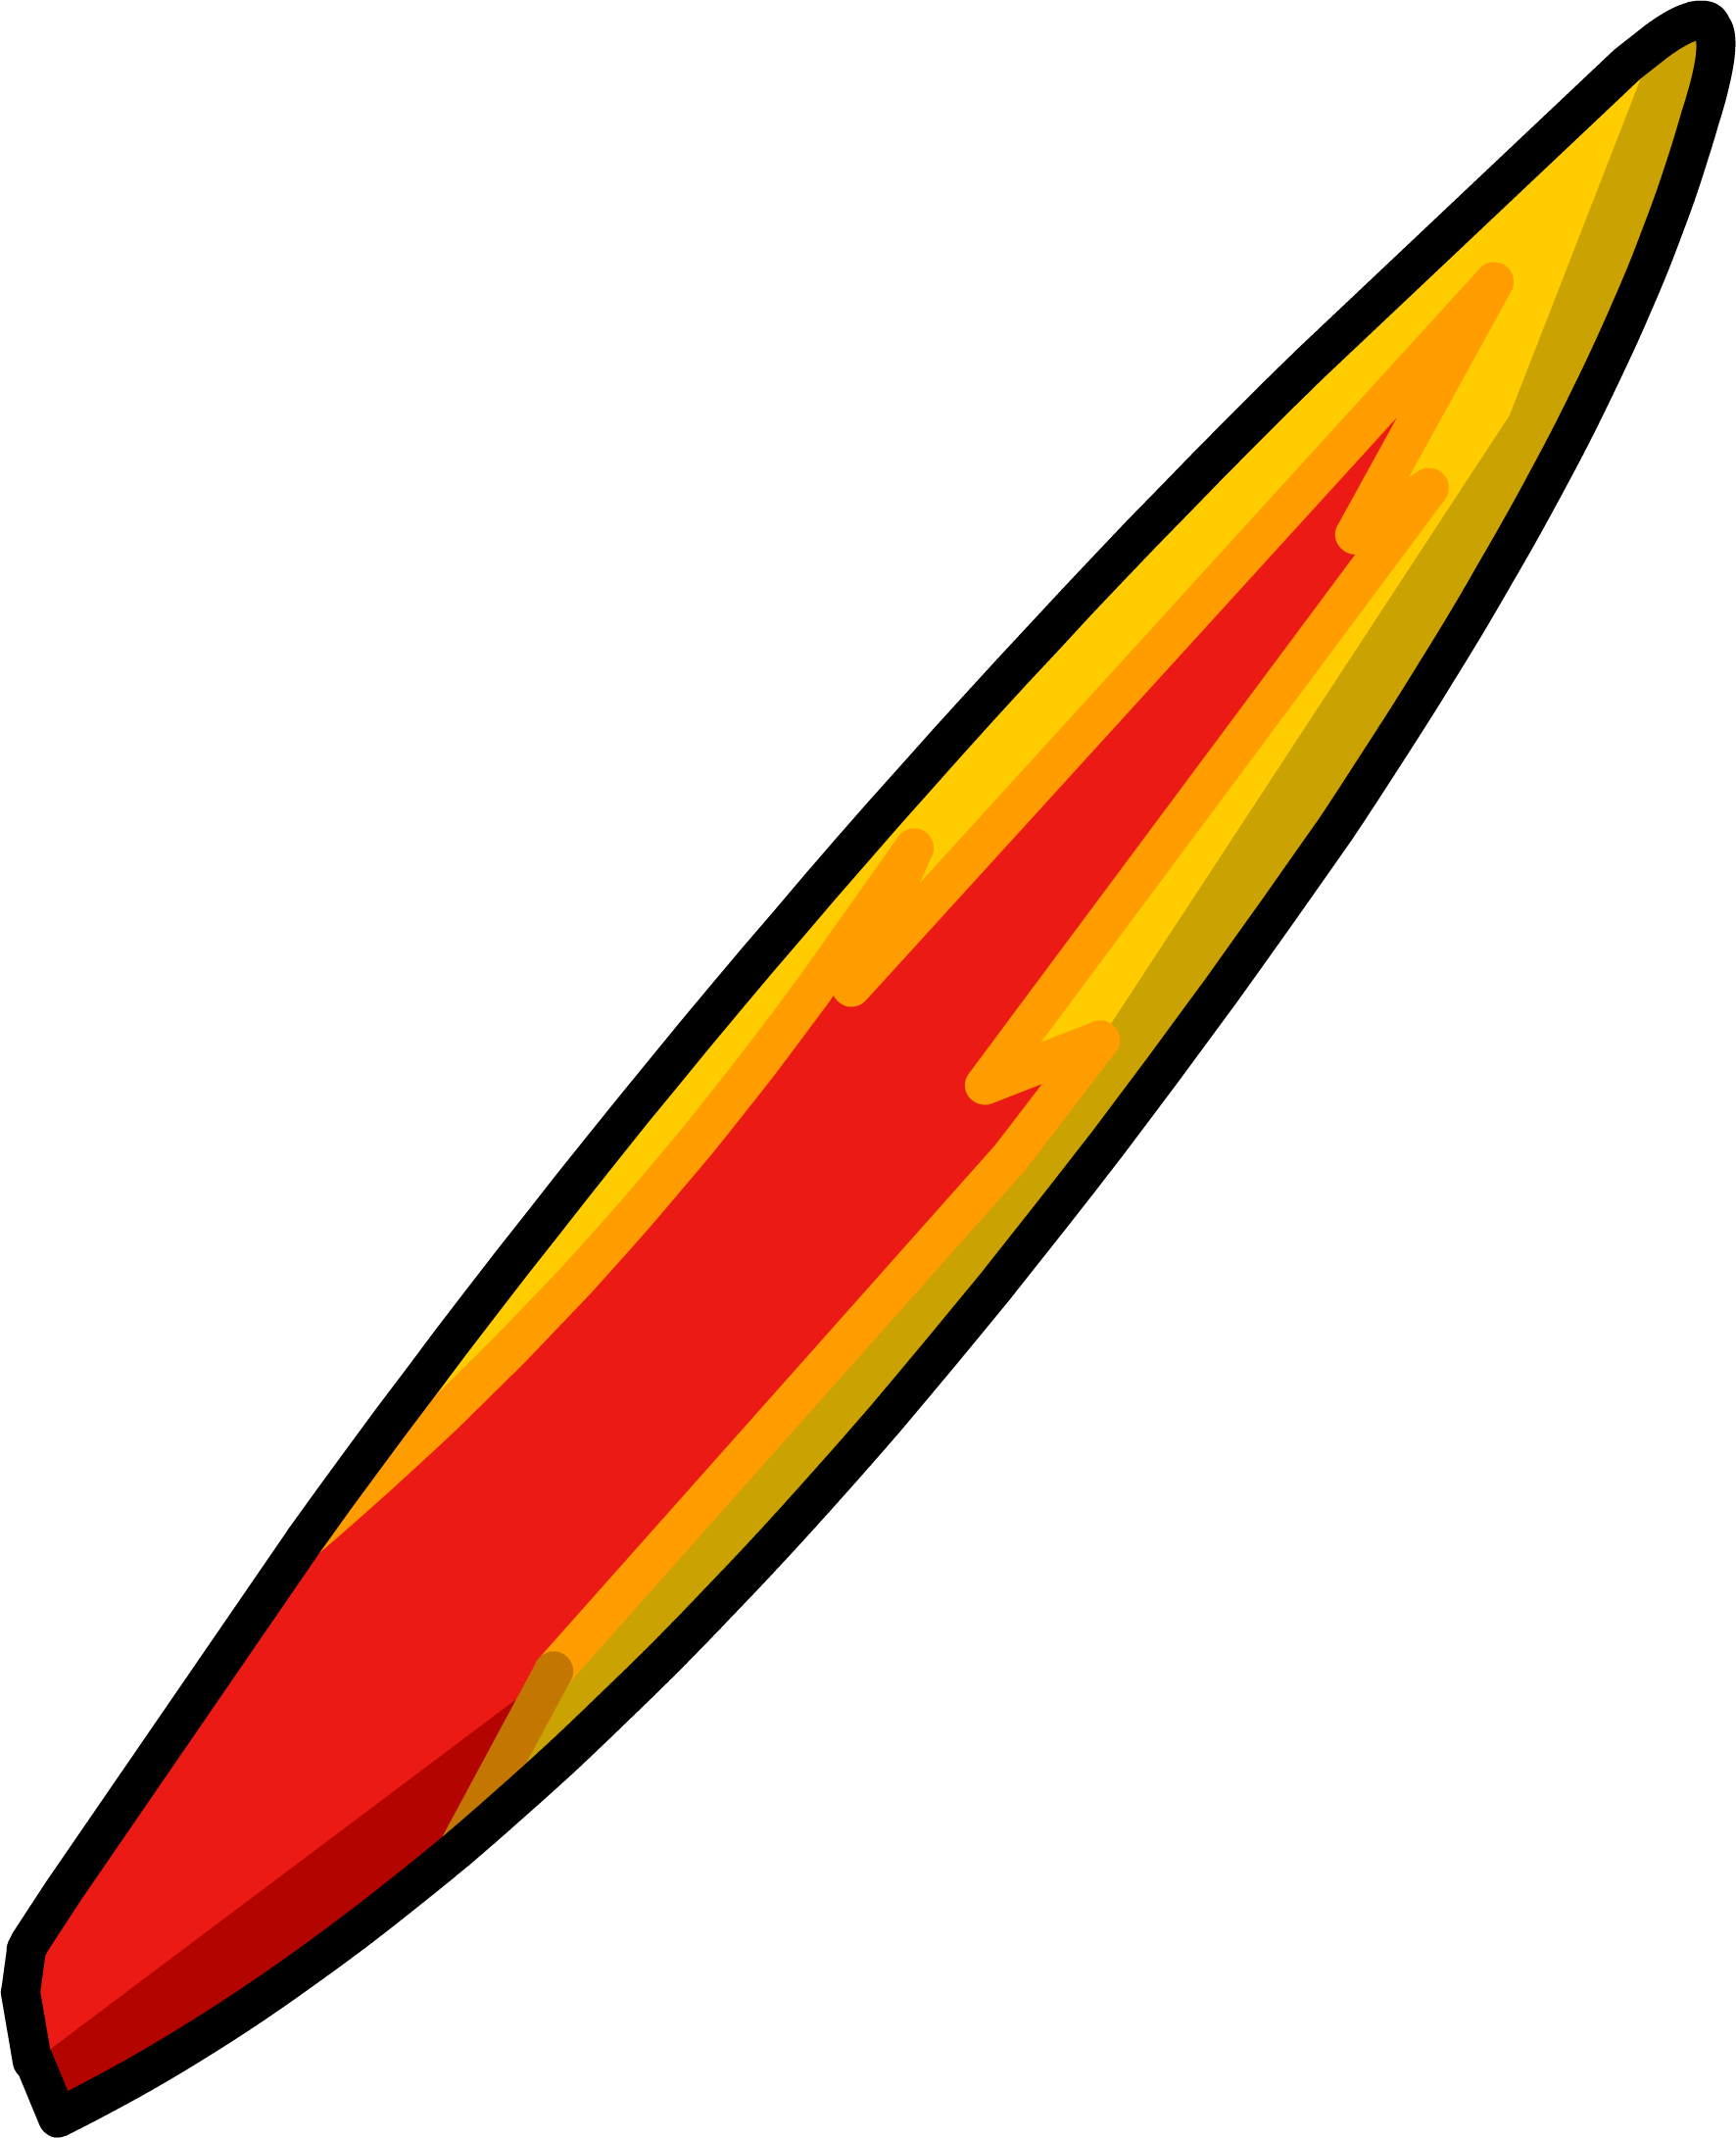 Flame Surfboard